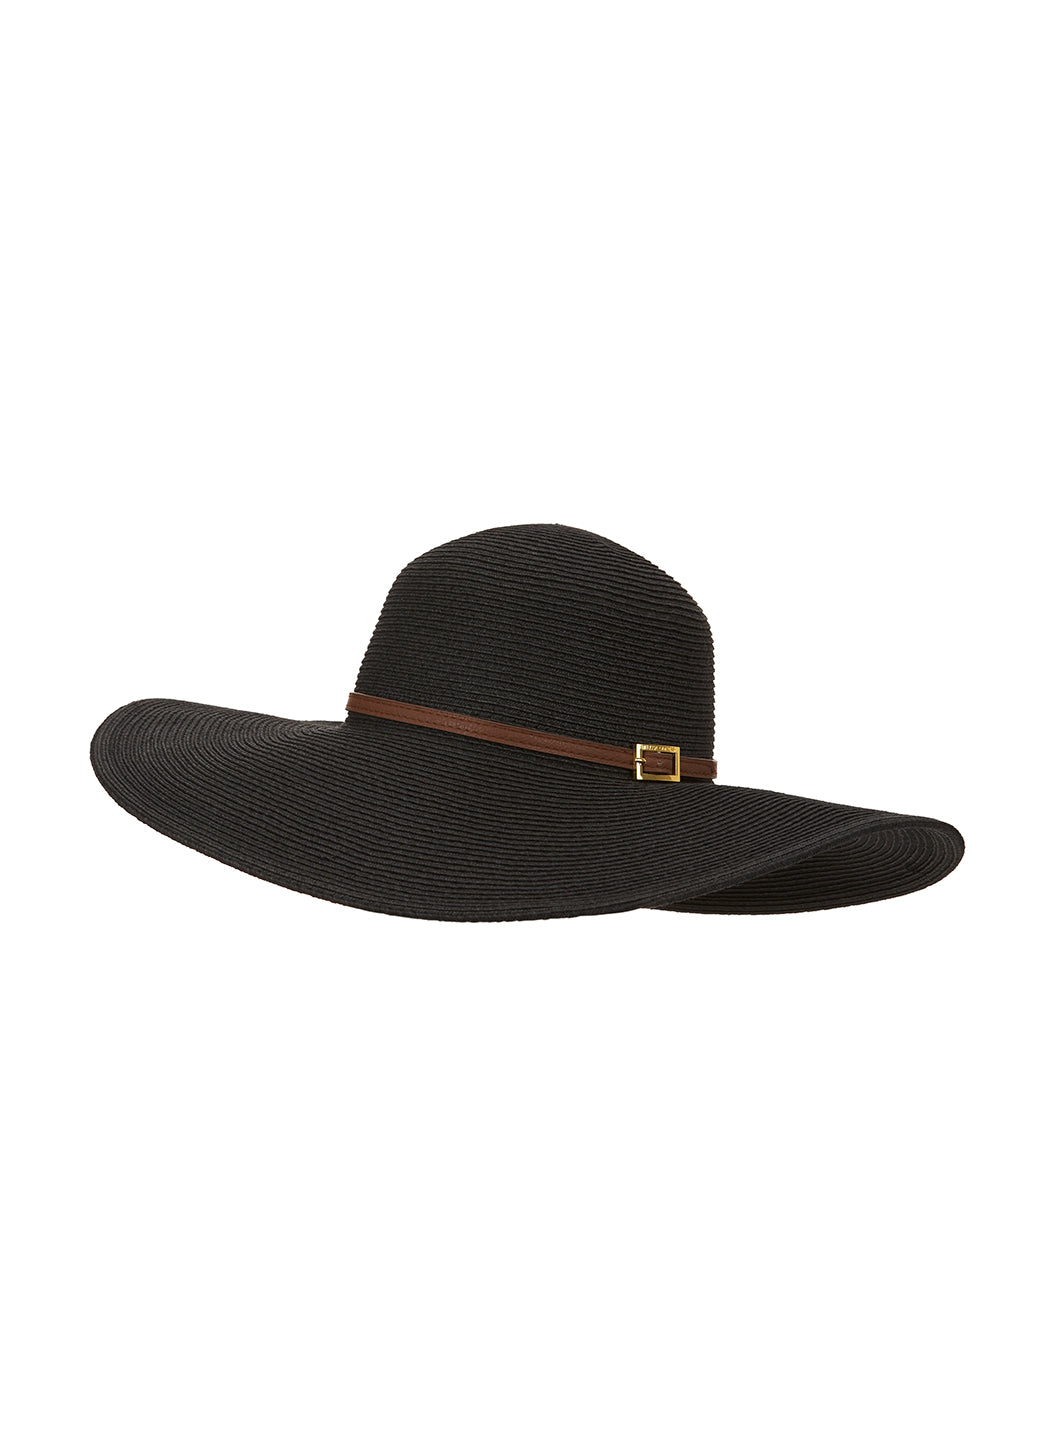 Melissa Odabash Jemima Wide Brim Beach Hat Black